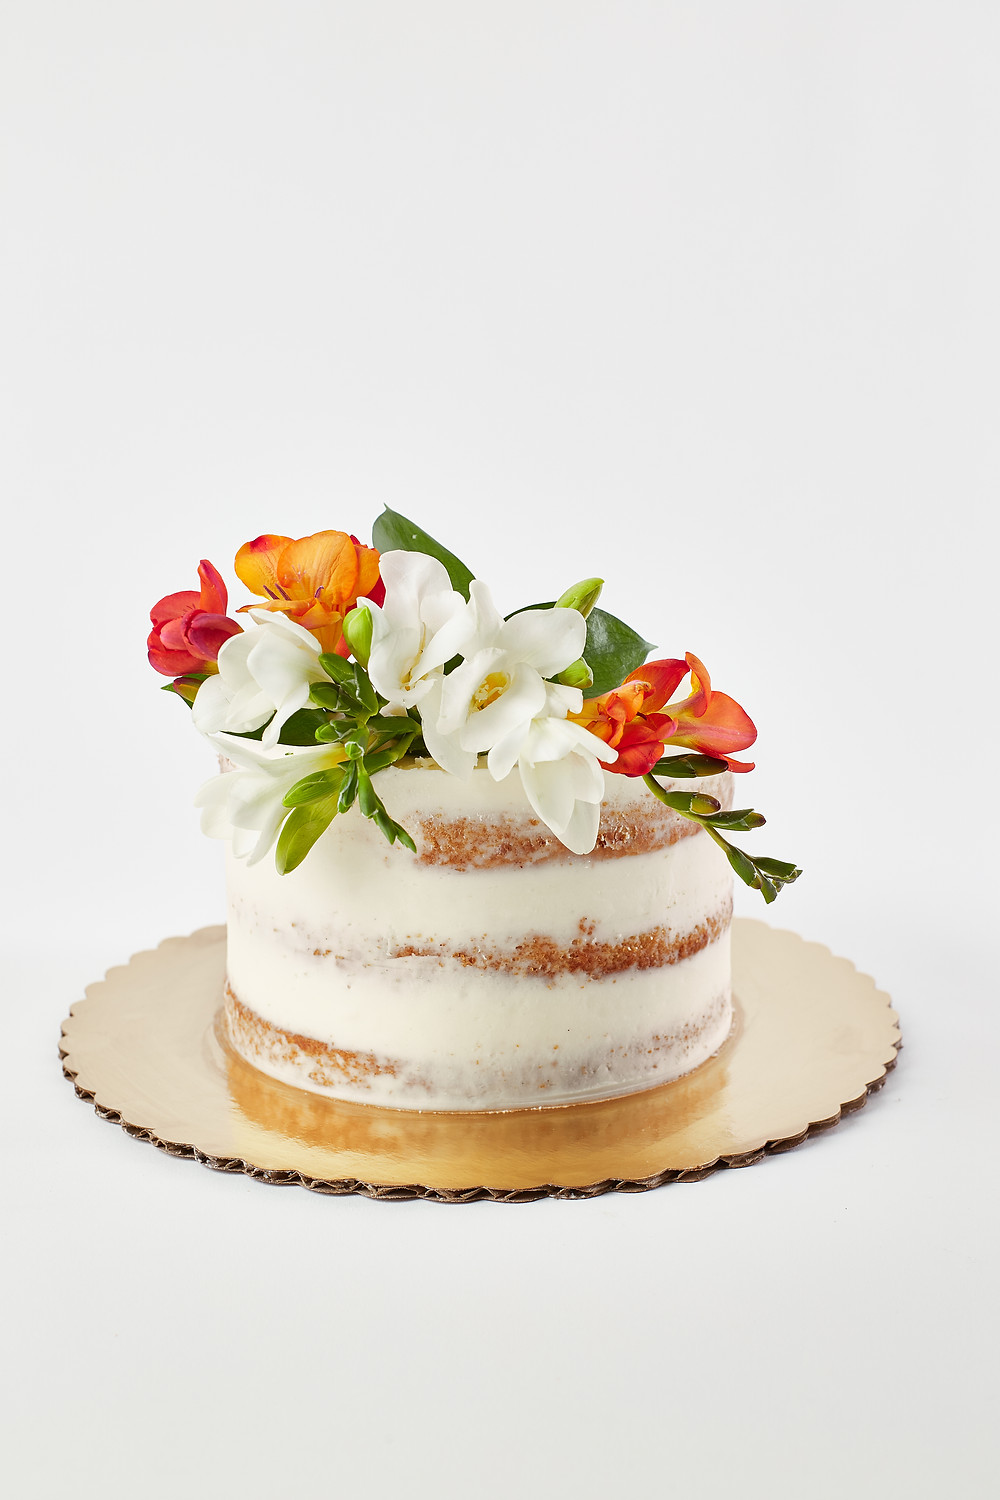 Photo of a naked cake with vanilla icing and floral top with white and orange florals from Park Slope's Buttermilk Bakeshop